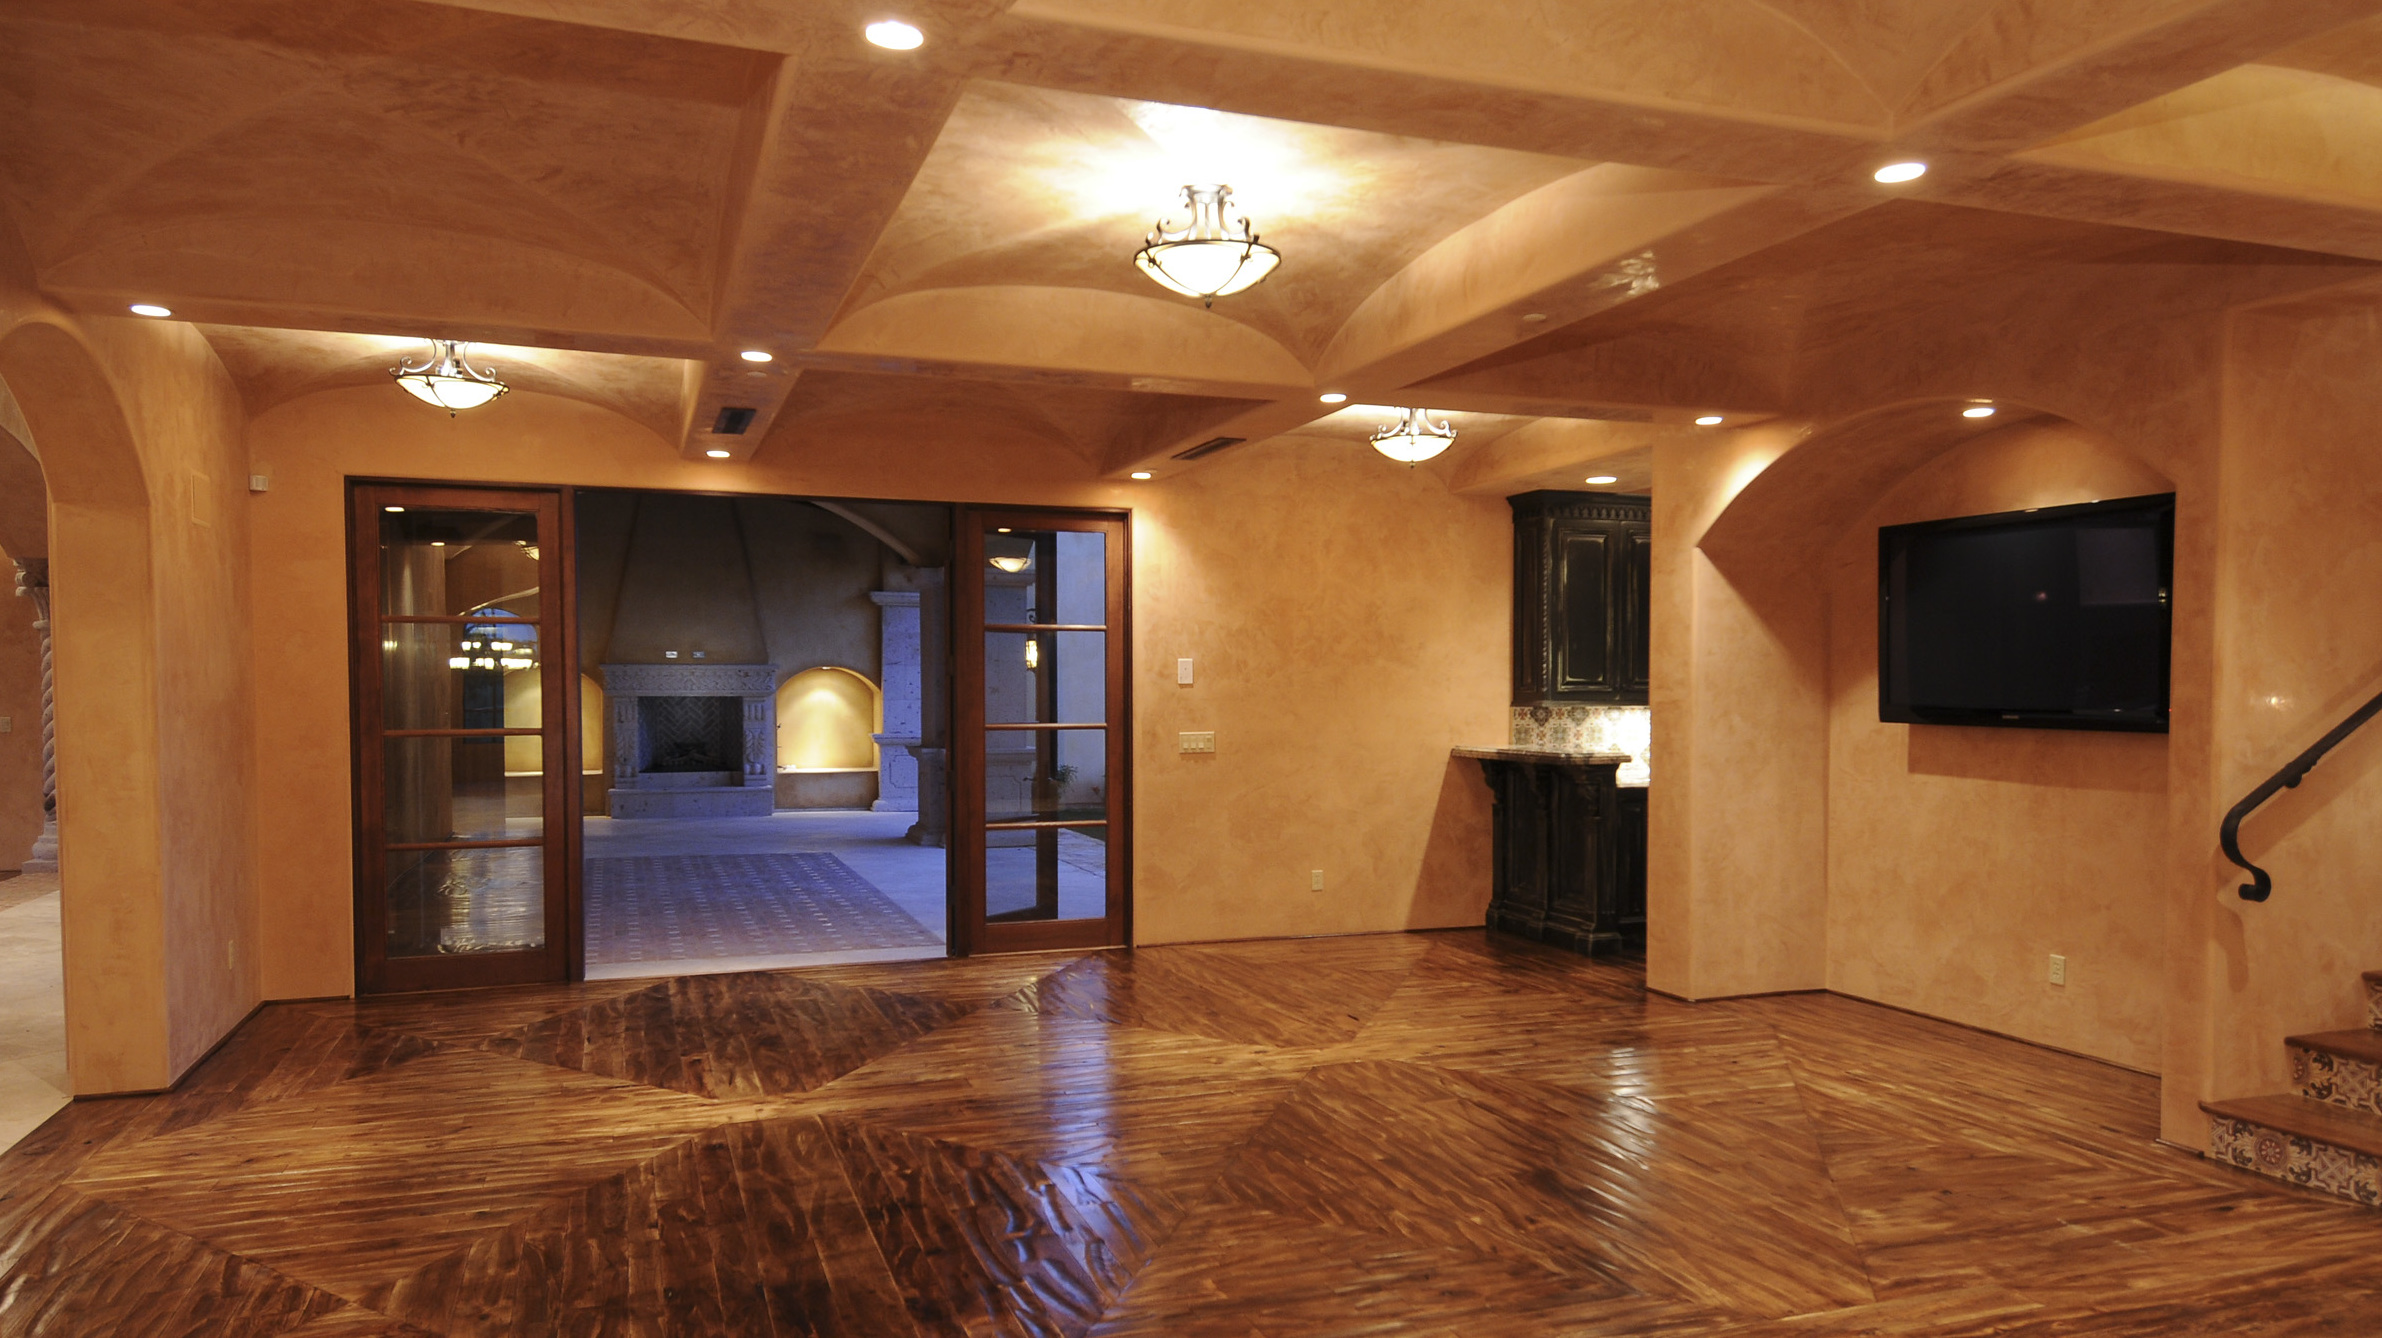 Delightful Interior Paints, Our Work